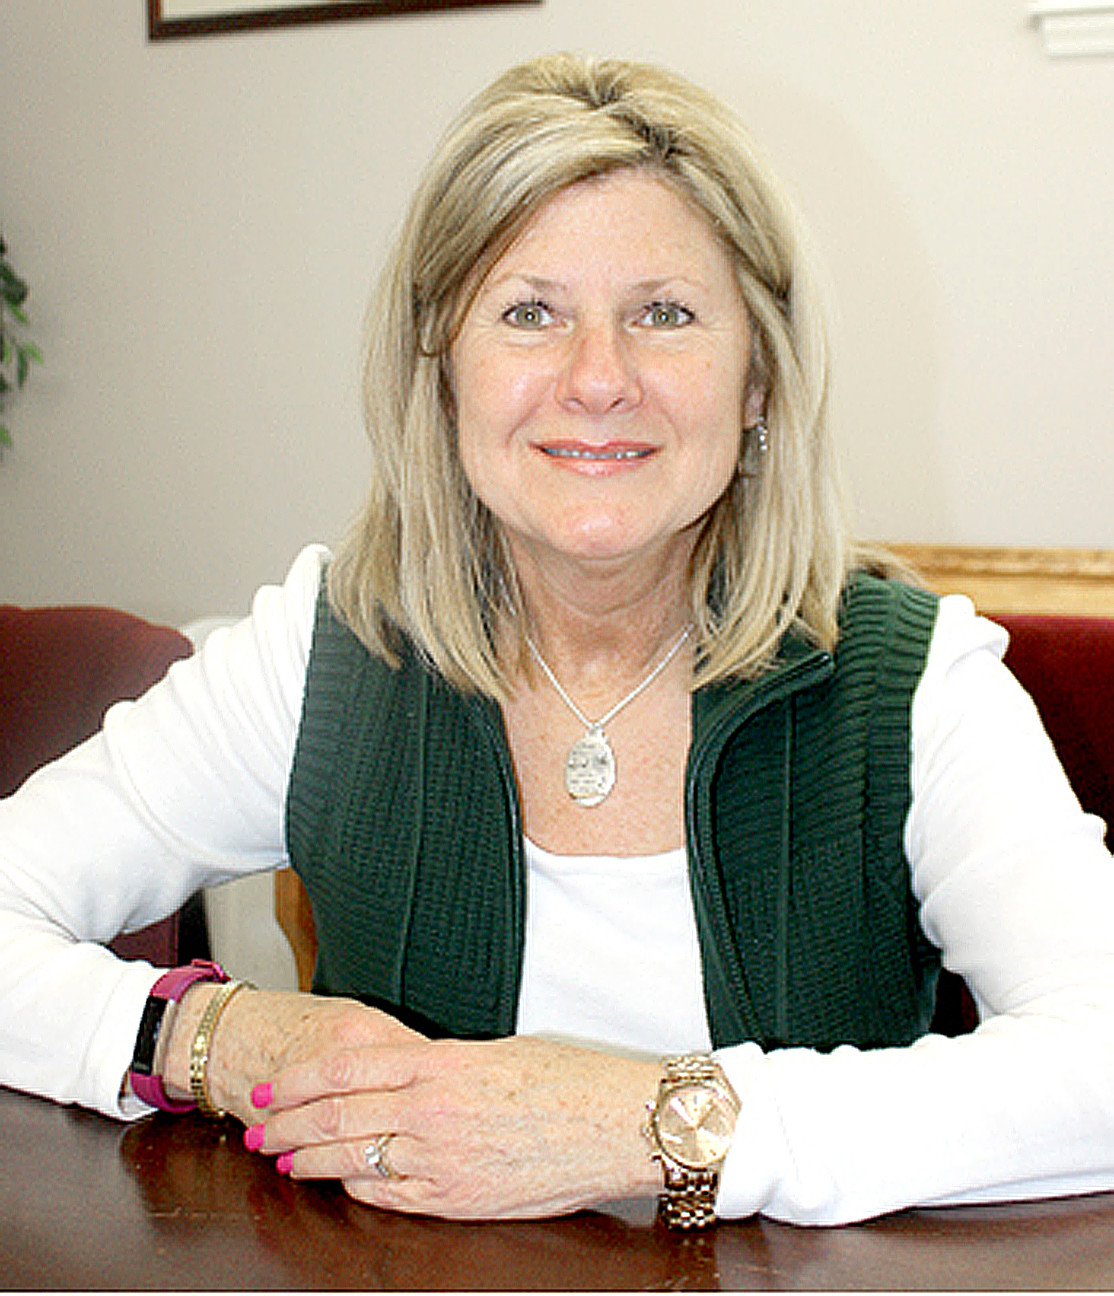 Meeting a Qualified Candidate: Bradley County Road Superintendent Sandra Knight